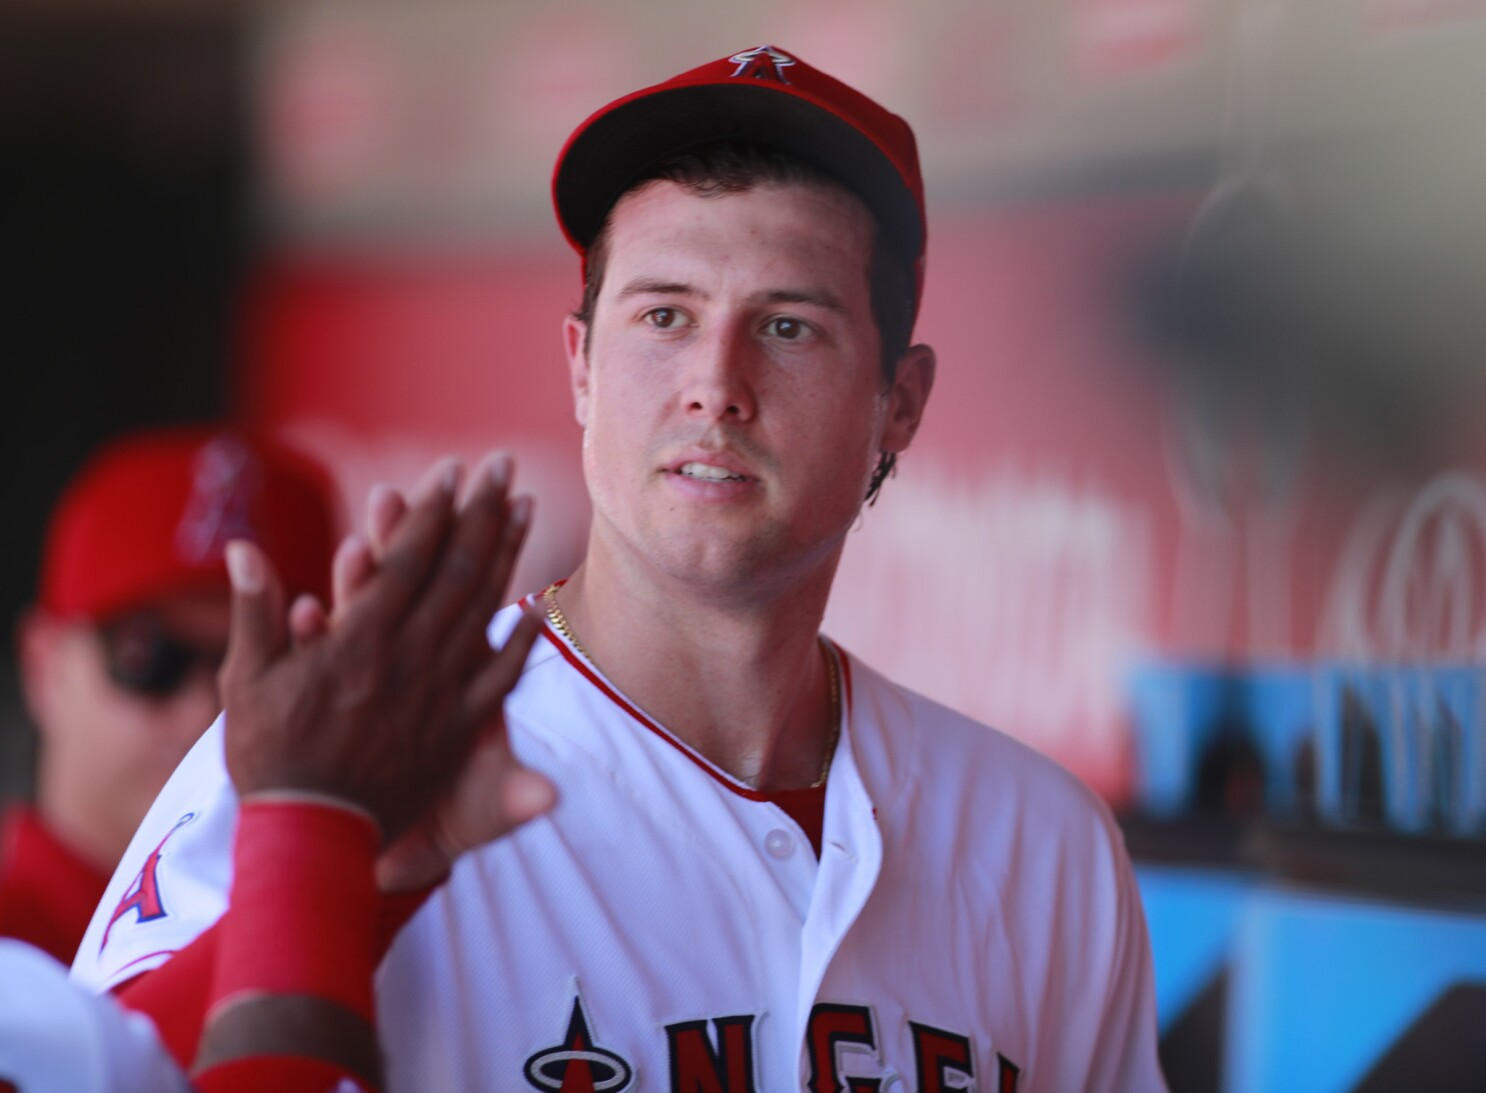 Nine MLB players to honor Tyler Skaggs with jersey nicknames